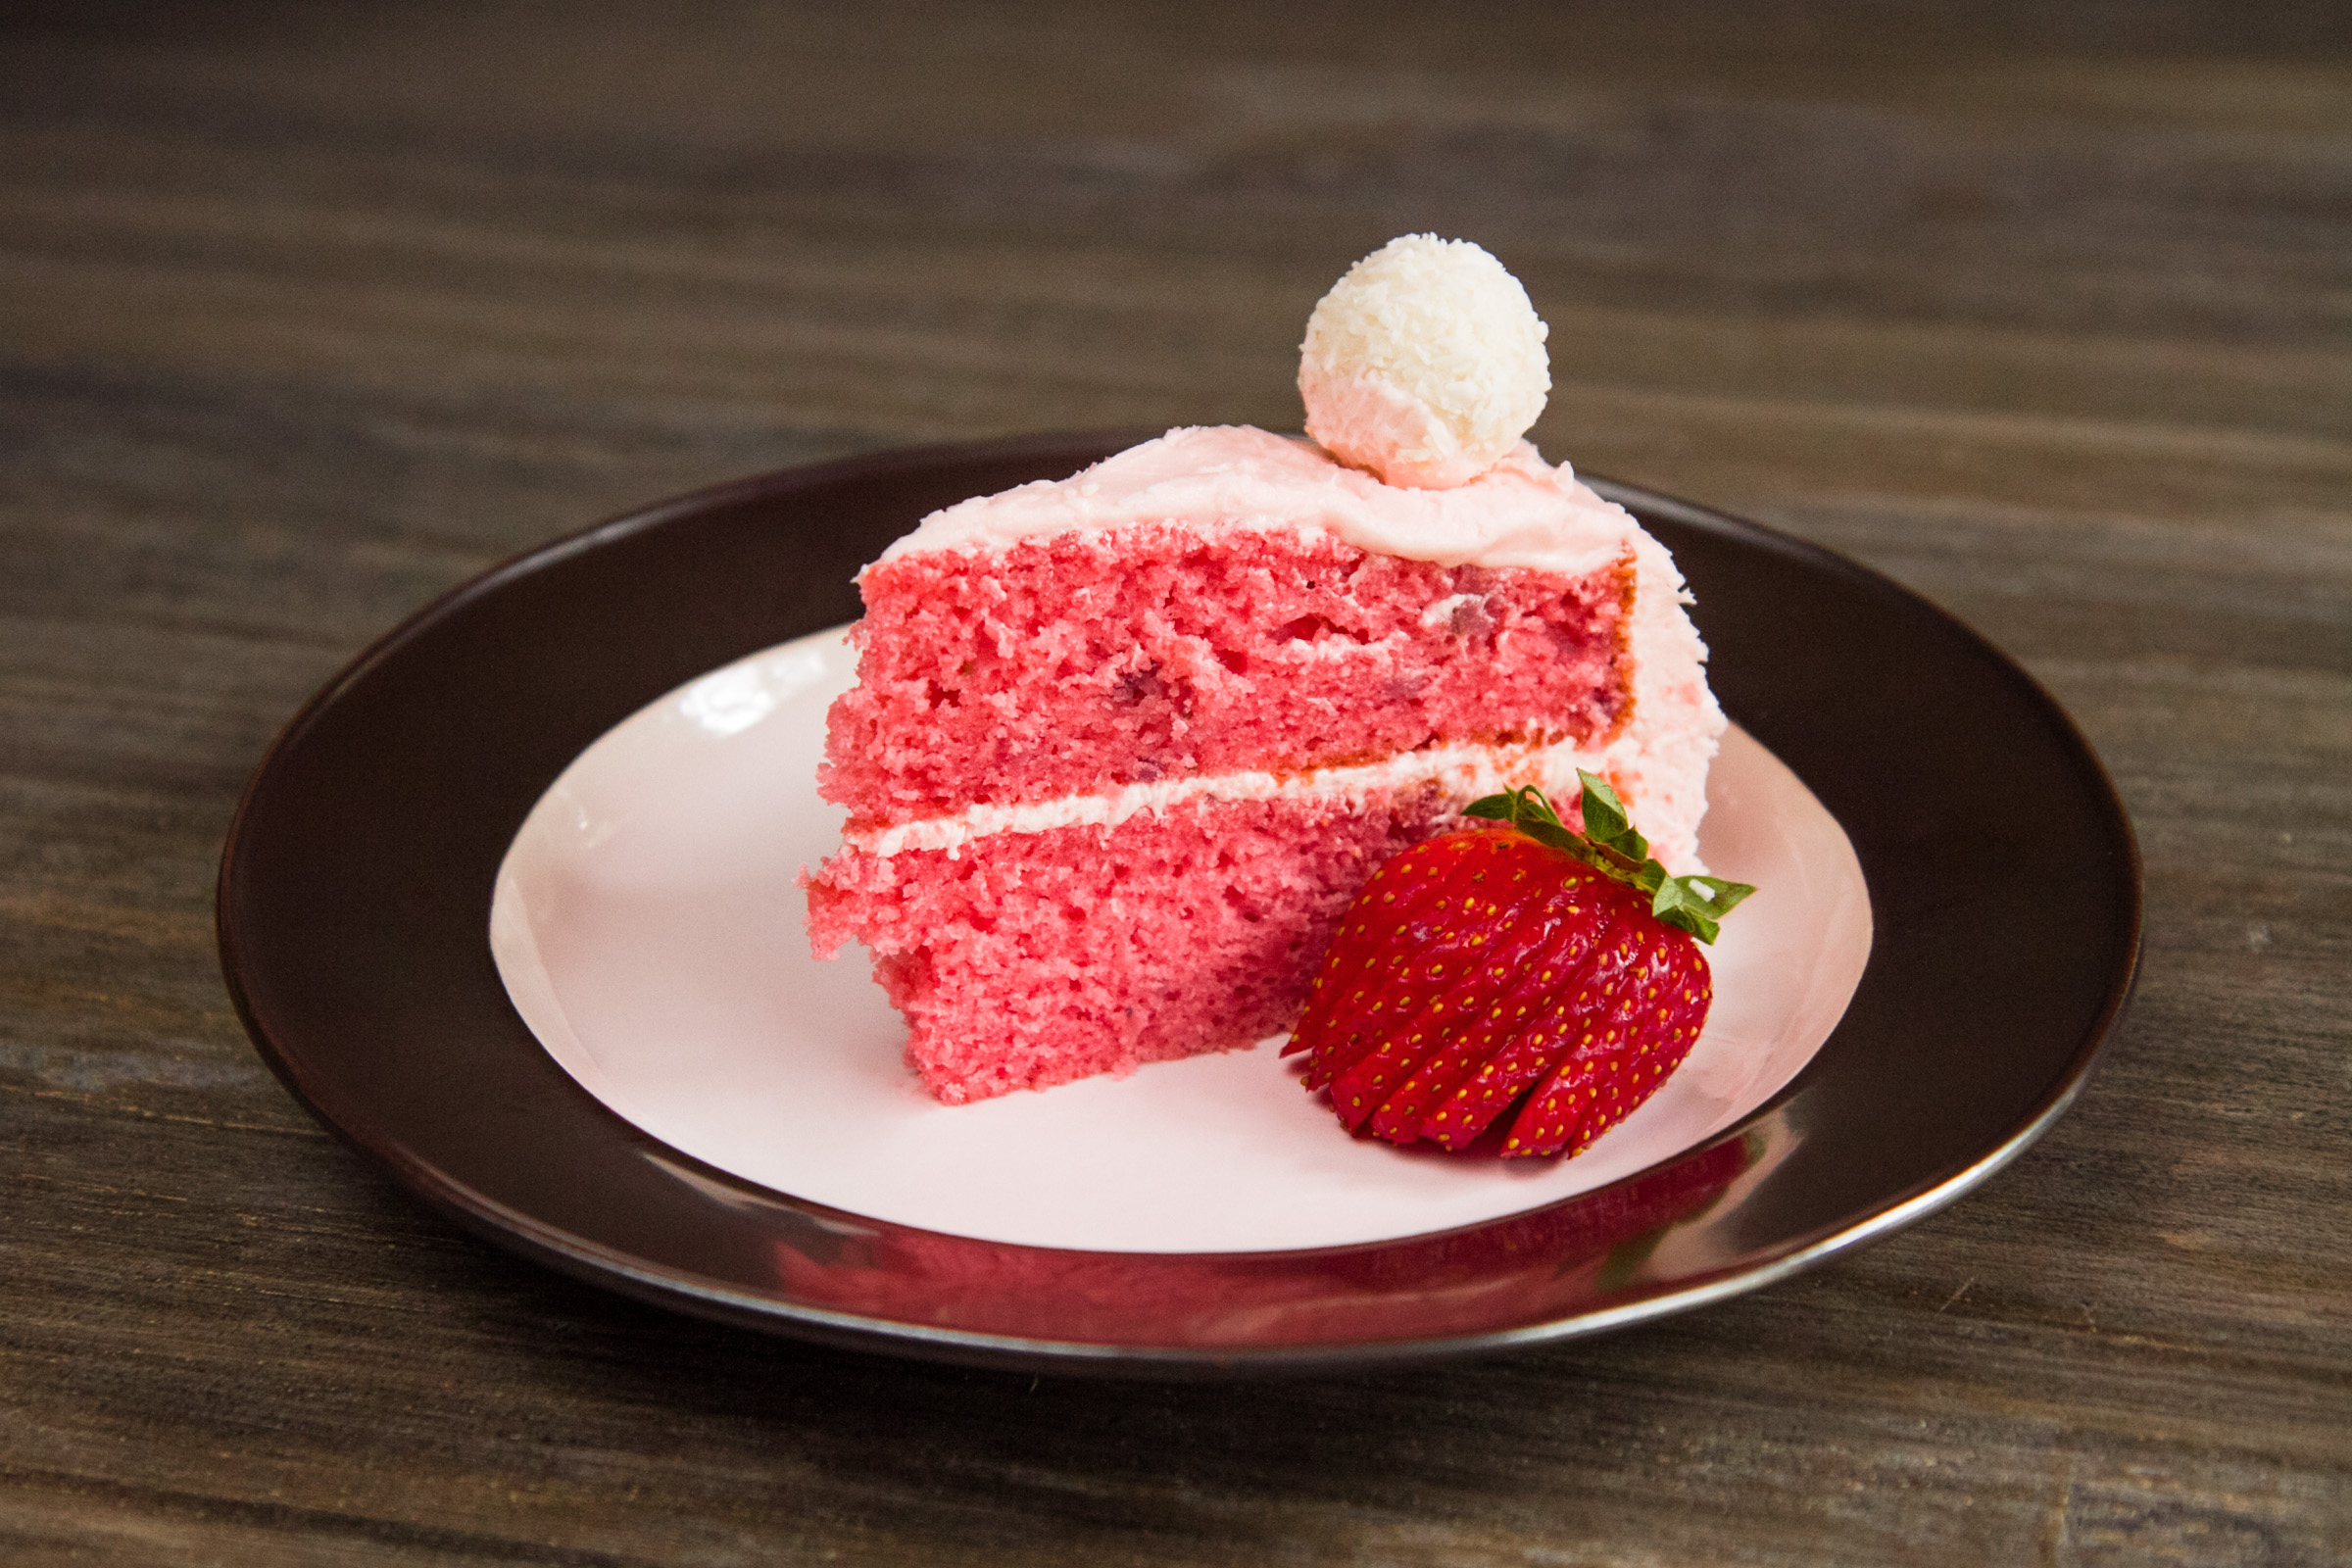 A slice of strawberry